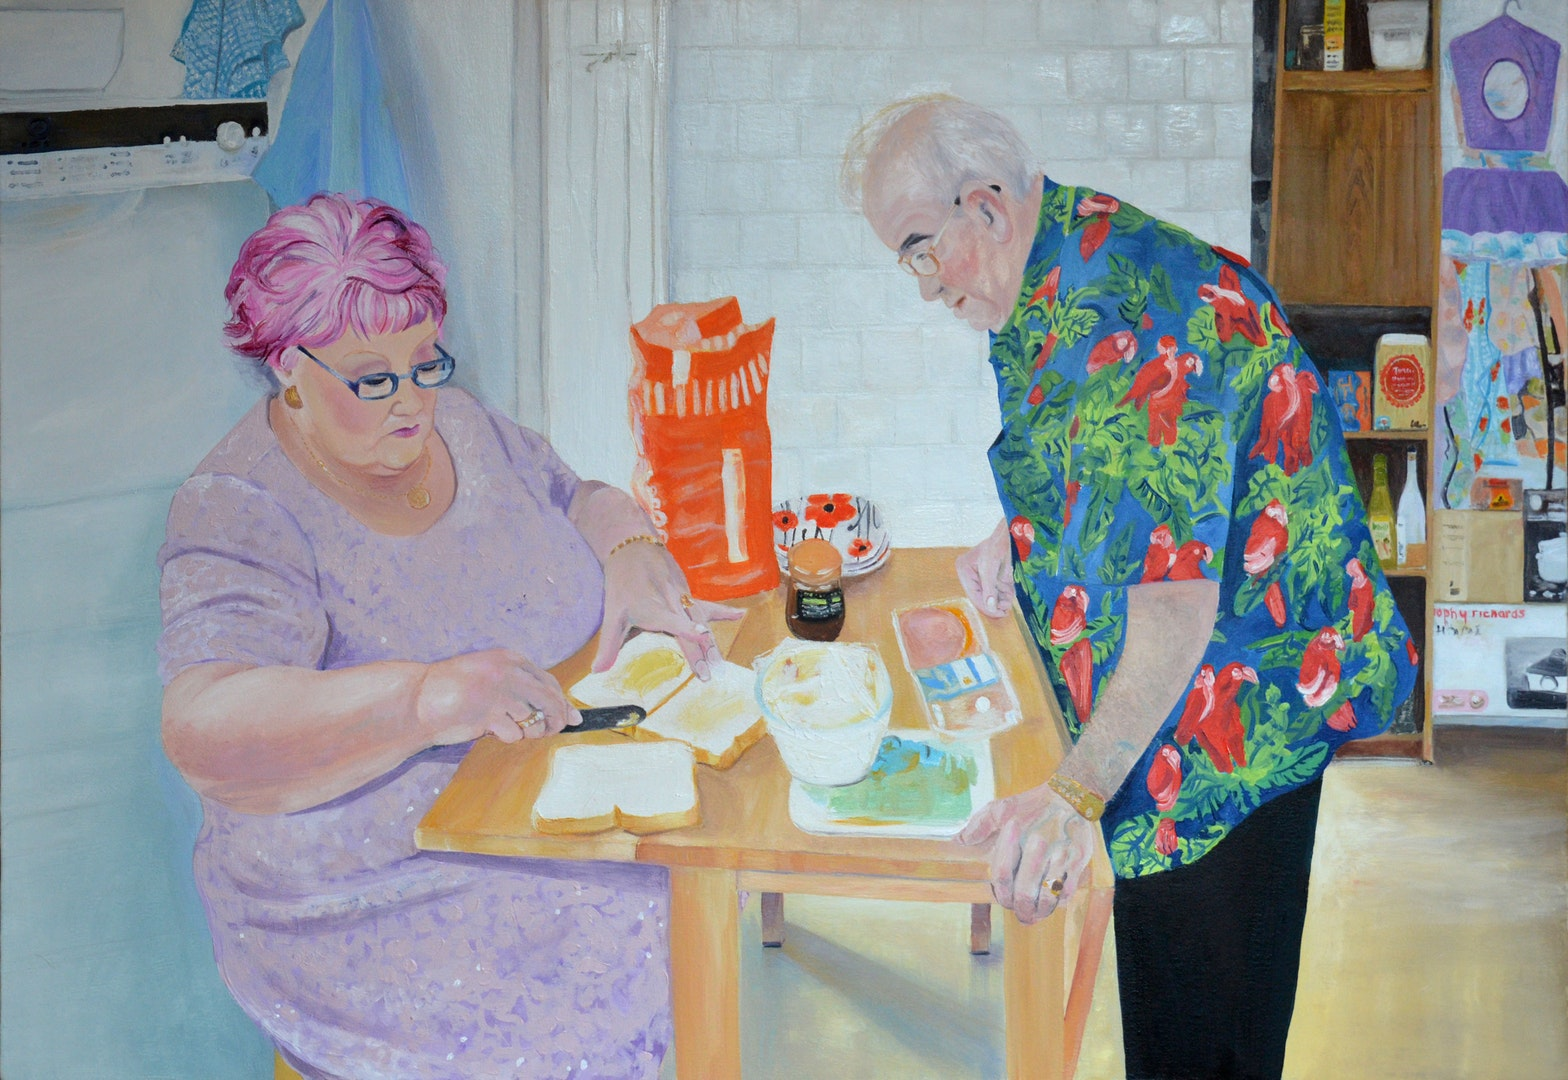 'Ron and Penny Jones', Louise Allen, Oil on canvas, 90 x 60 cm